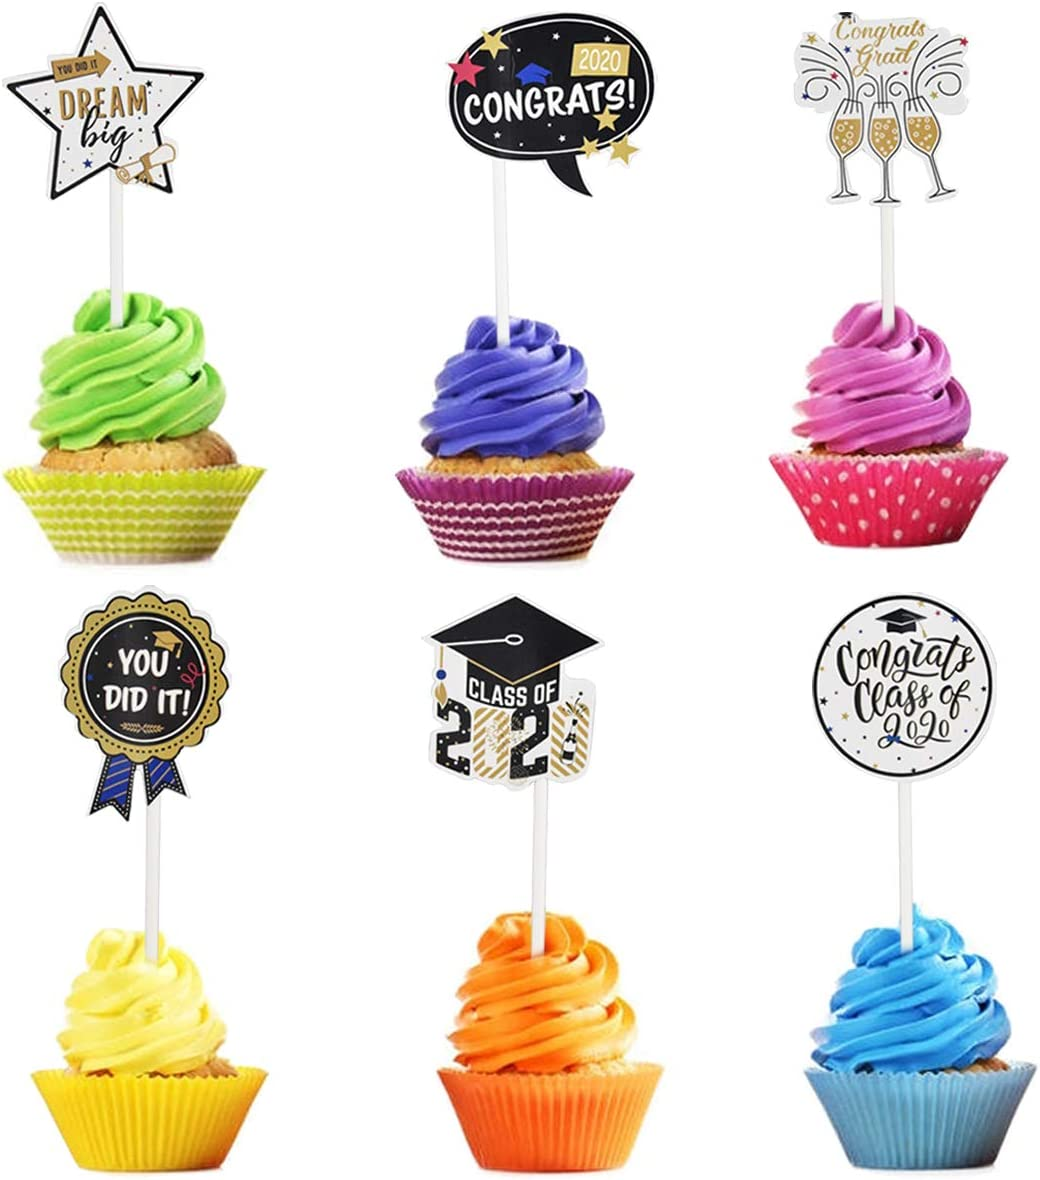 68 Pcs Graduation Party Decoration Graduation Theme Party Supplies Hanging Swirl Photo Booth Props Cupcake Topper Big Selfie Photo Prop with Congrats Grad Card for Background Wall Cakes Photographing